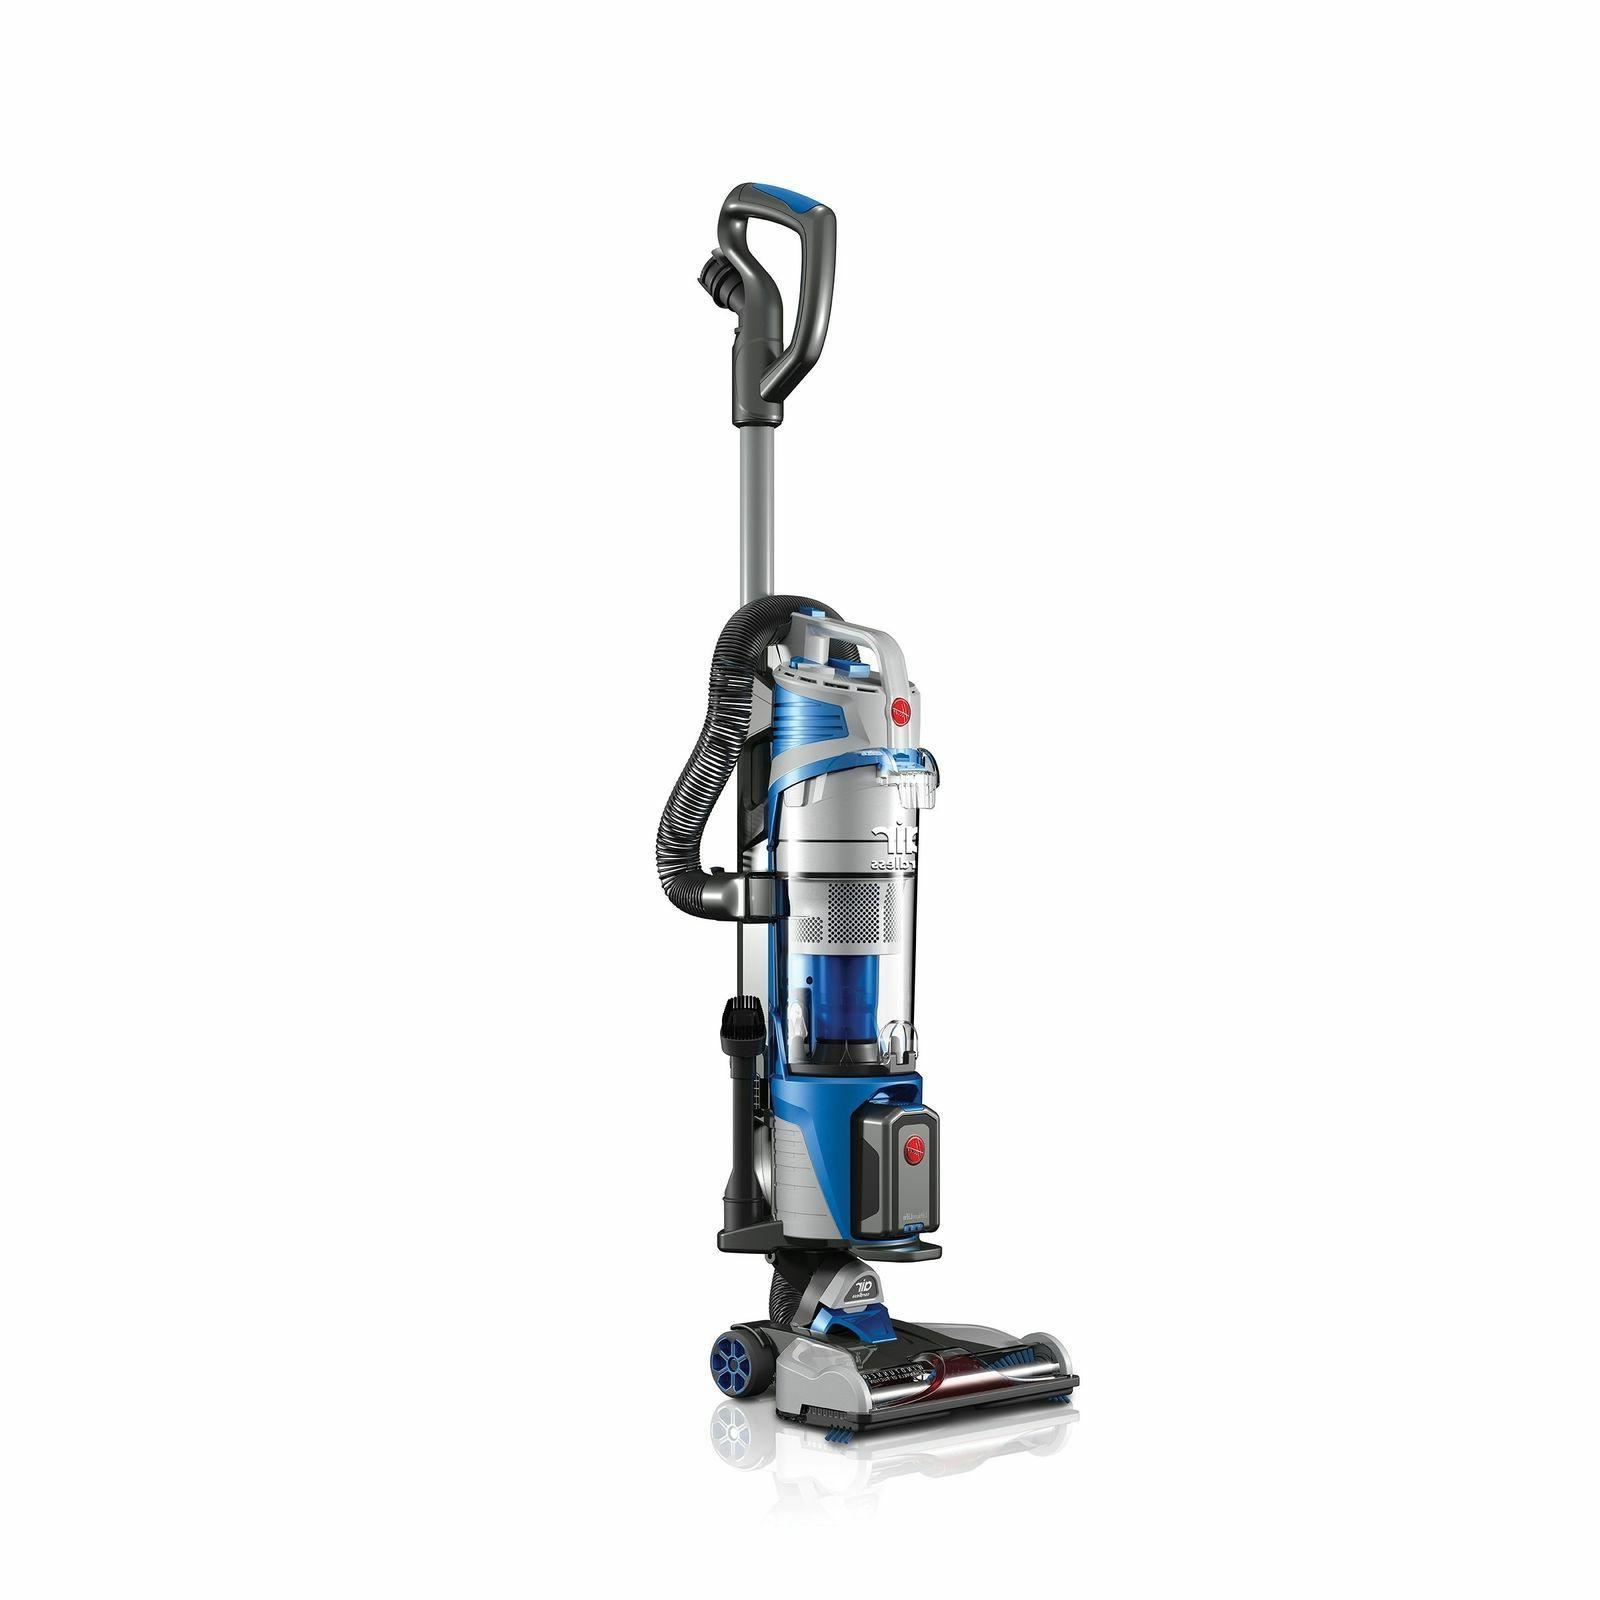 Hoover Cleaner Lift 20 Ion Bagless